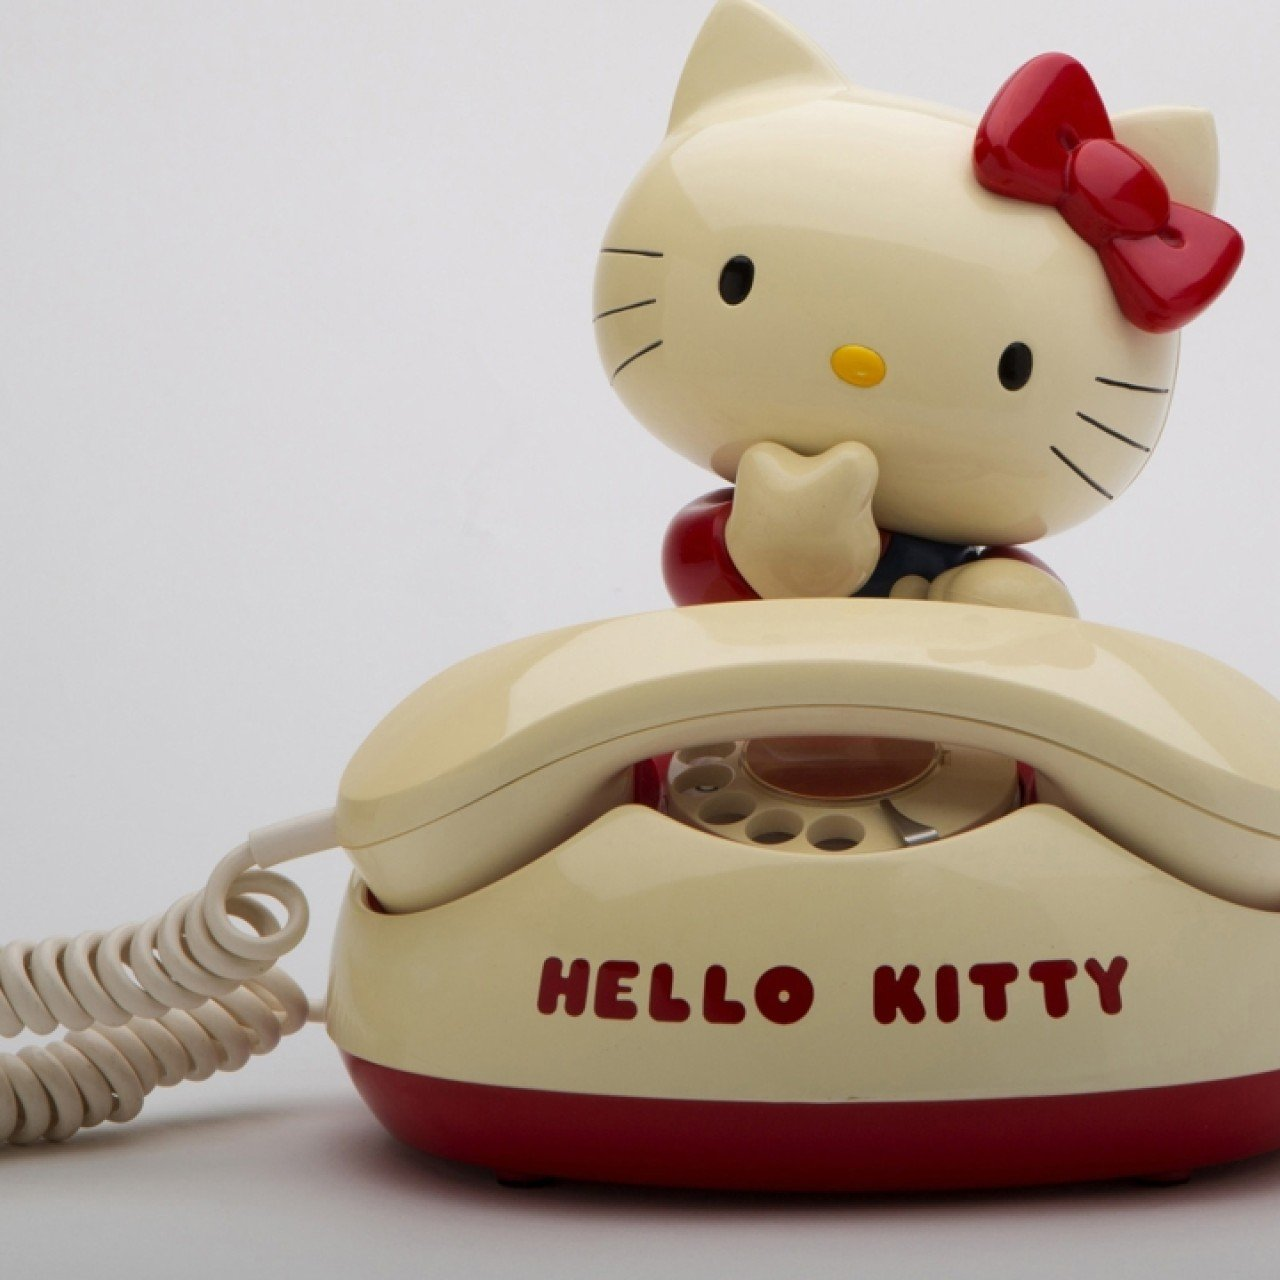 2ef0b124f Hong Kong Hello Kitty fan site left user details exposed, but no personal  data stolen, say owners | South China Morning Post